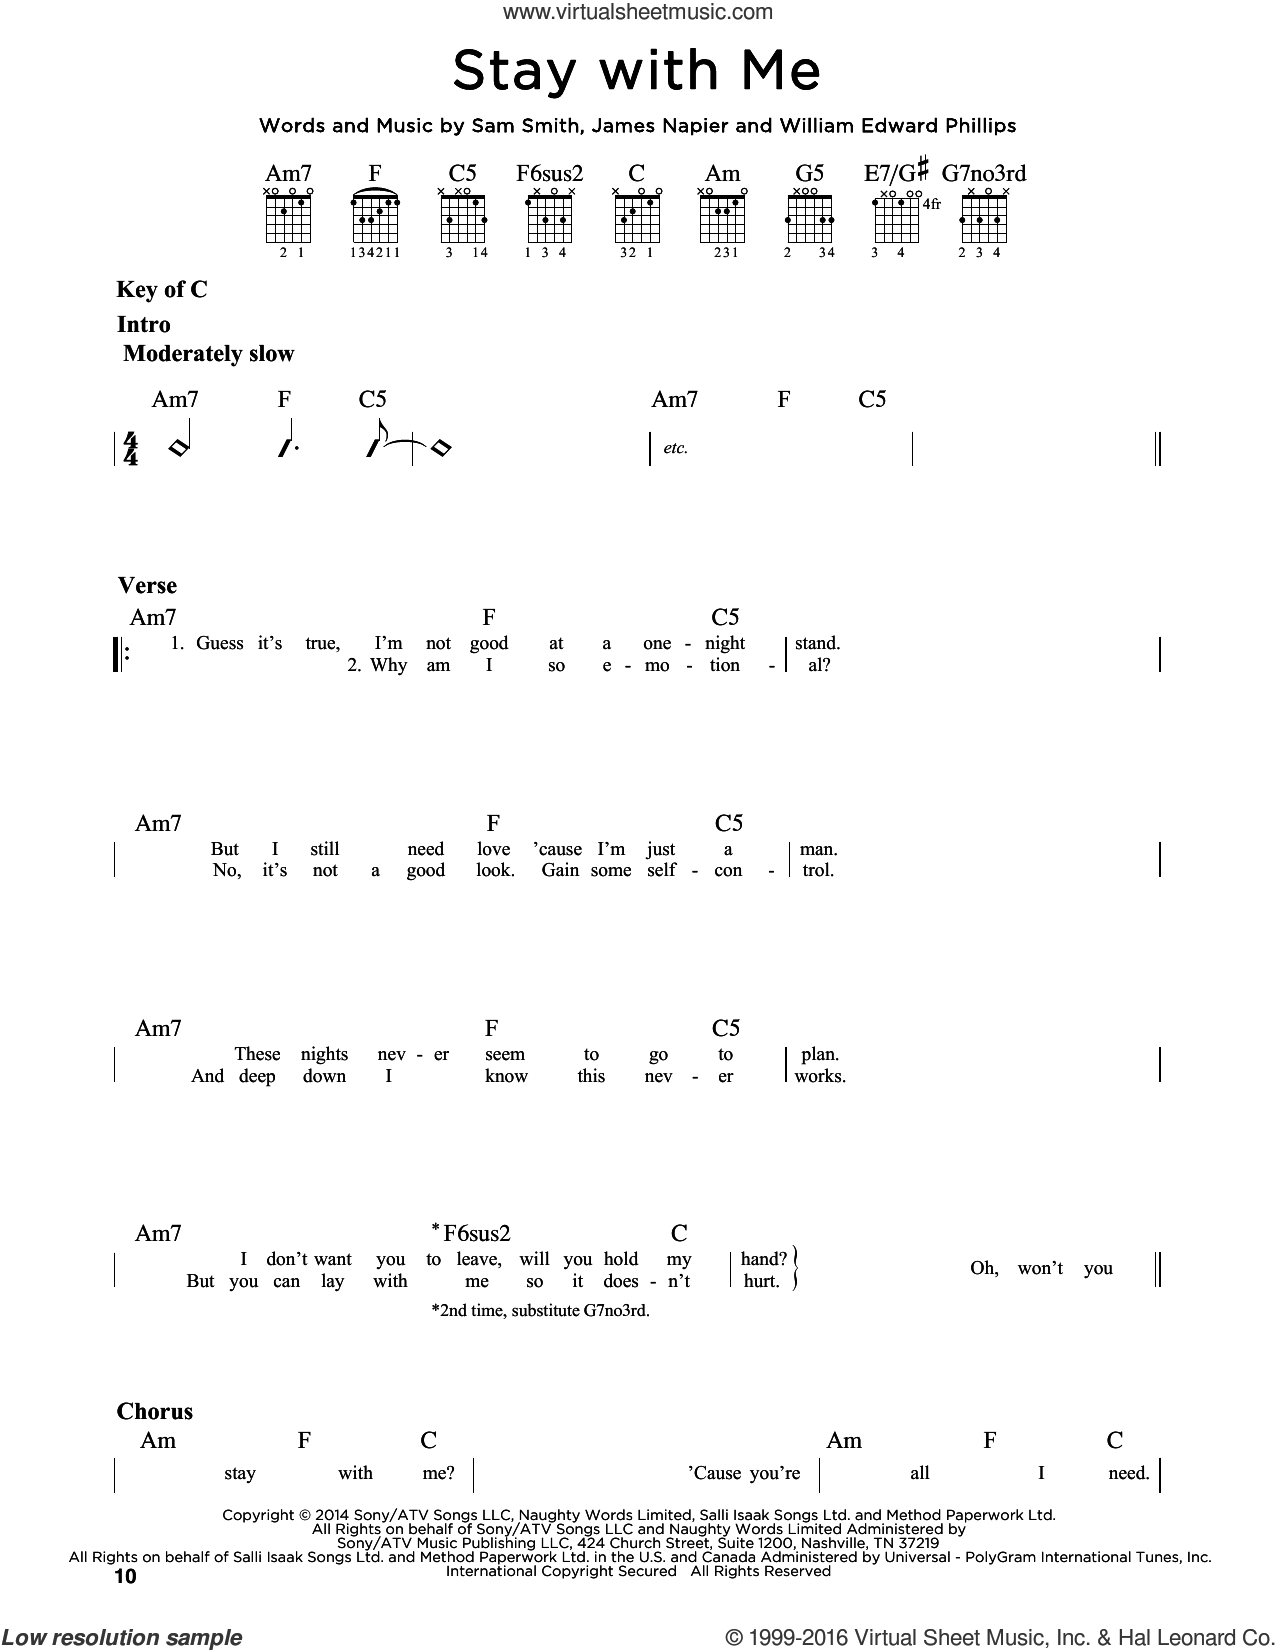 Stay With Me sheet music for guitar solo (lead sheet) by William Edward Phillips